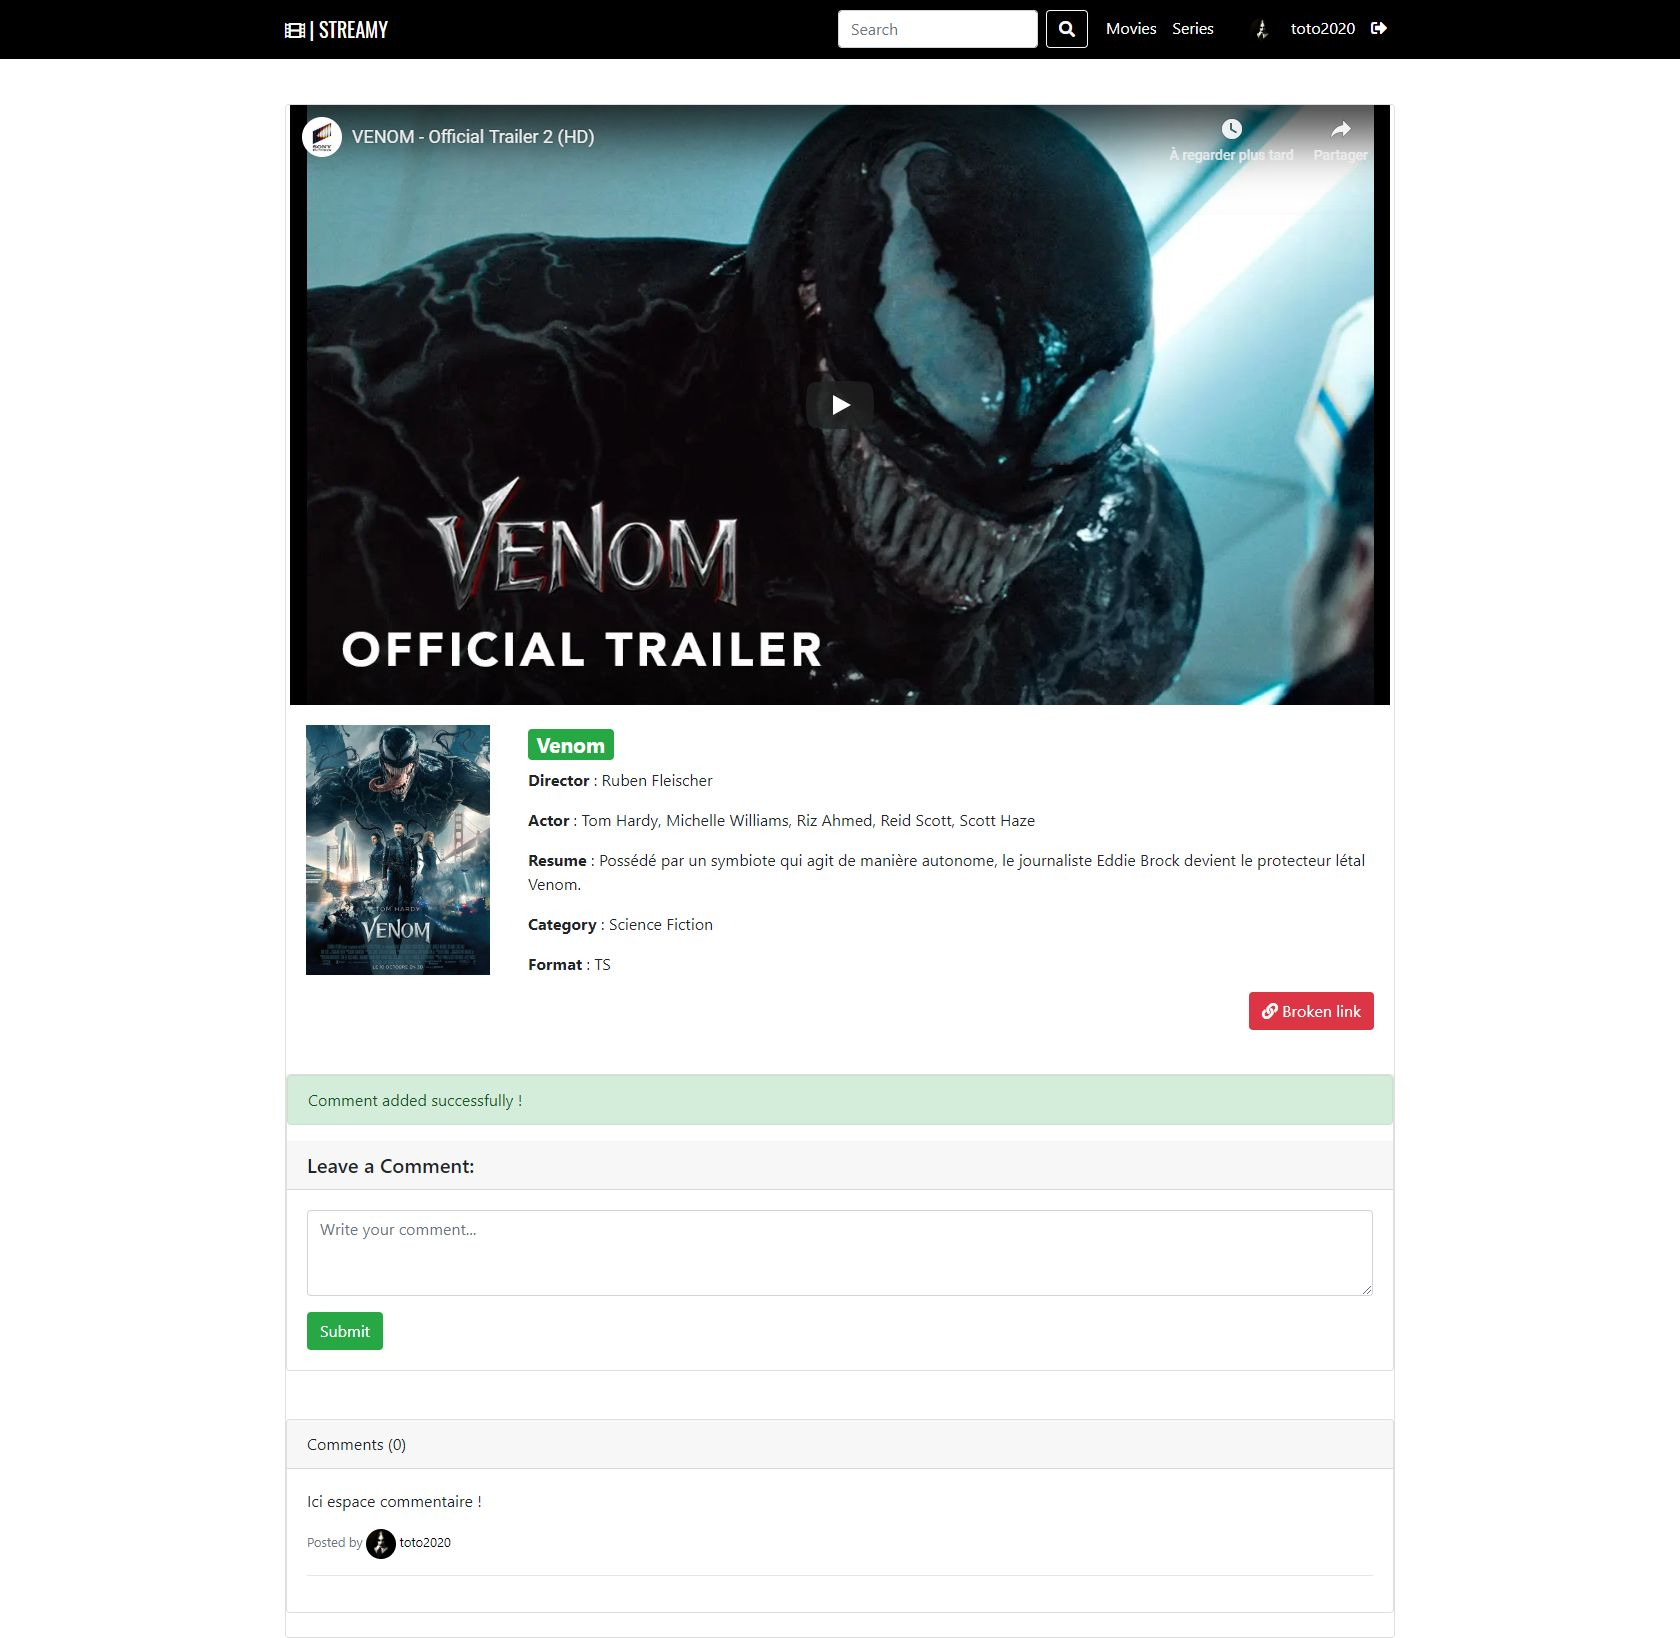 Streamy - Movies And Series Streaming Platform PHP Screenshot 17